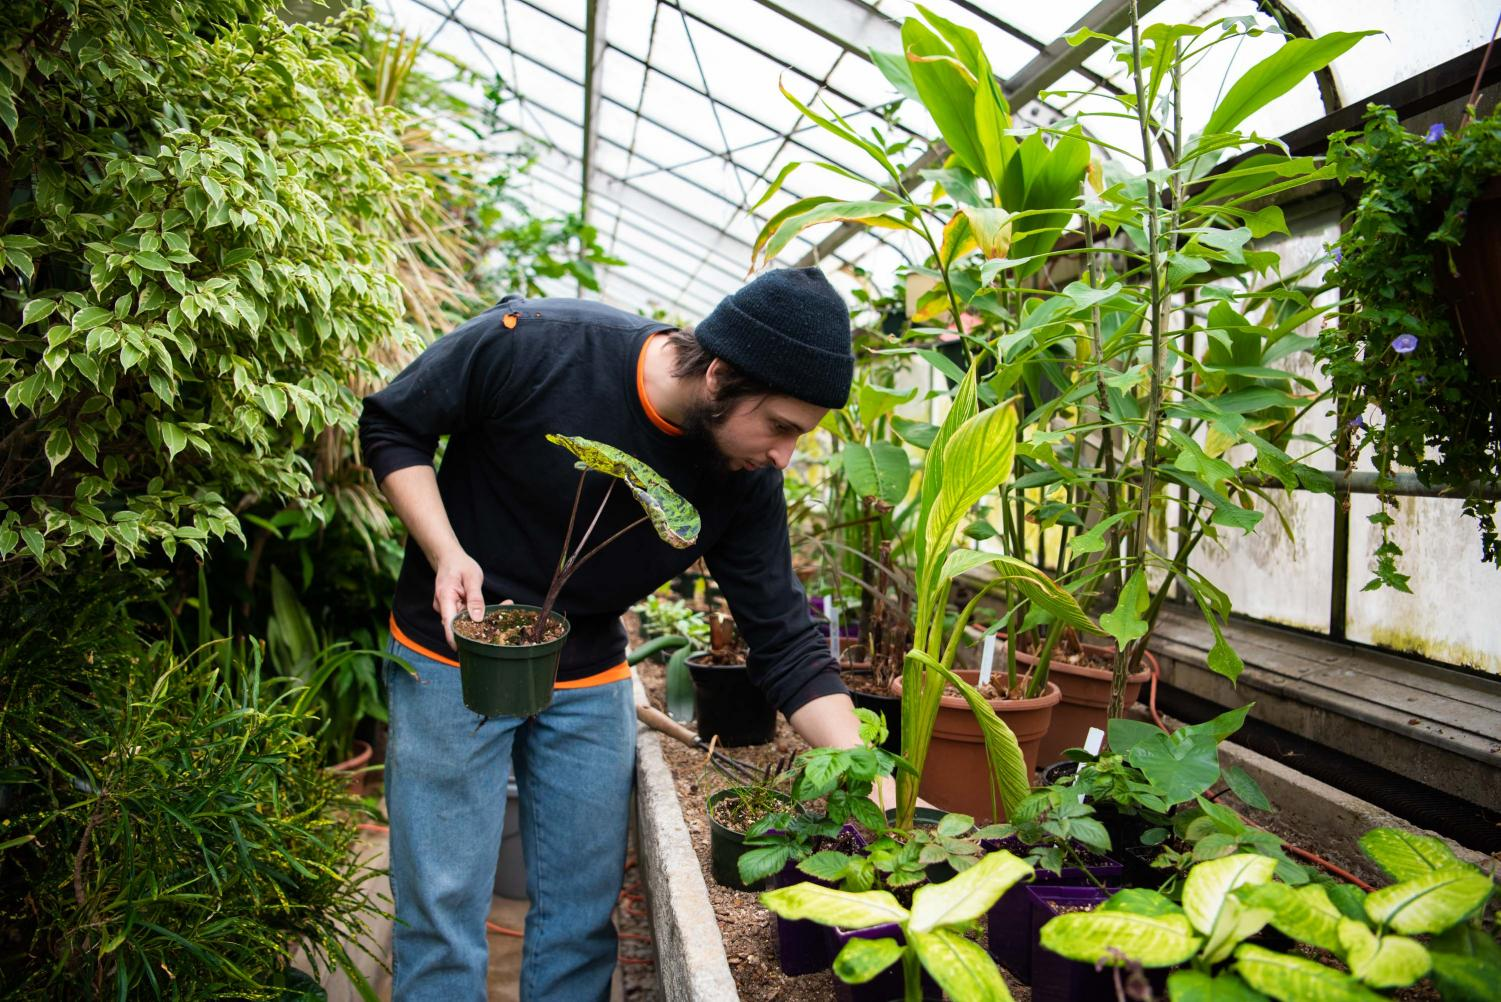 Jacob Janicki, a senior majoring in plant biology, prunes and places plants on Tuesday, Feb. 19, 2019 inside the Plant Biology Greenhouse and Conservatory. Janicki, a student worker, Is planning on working at the greenhouse next semester.